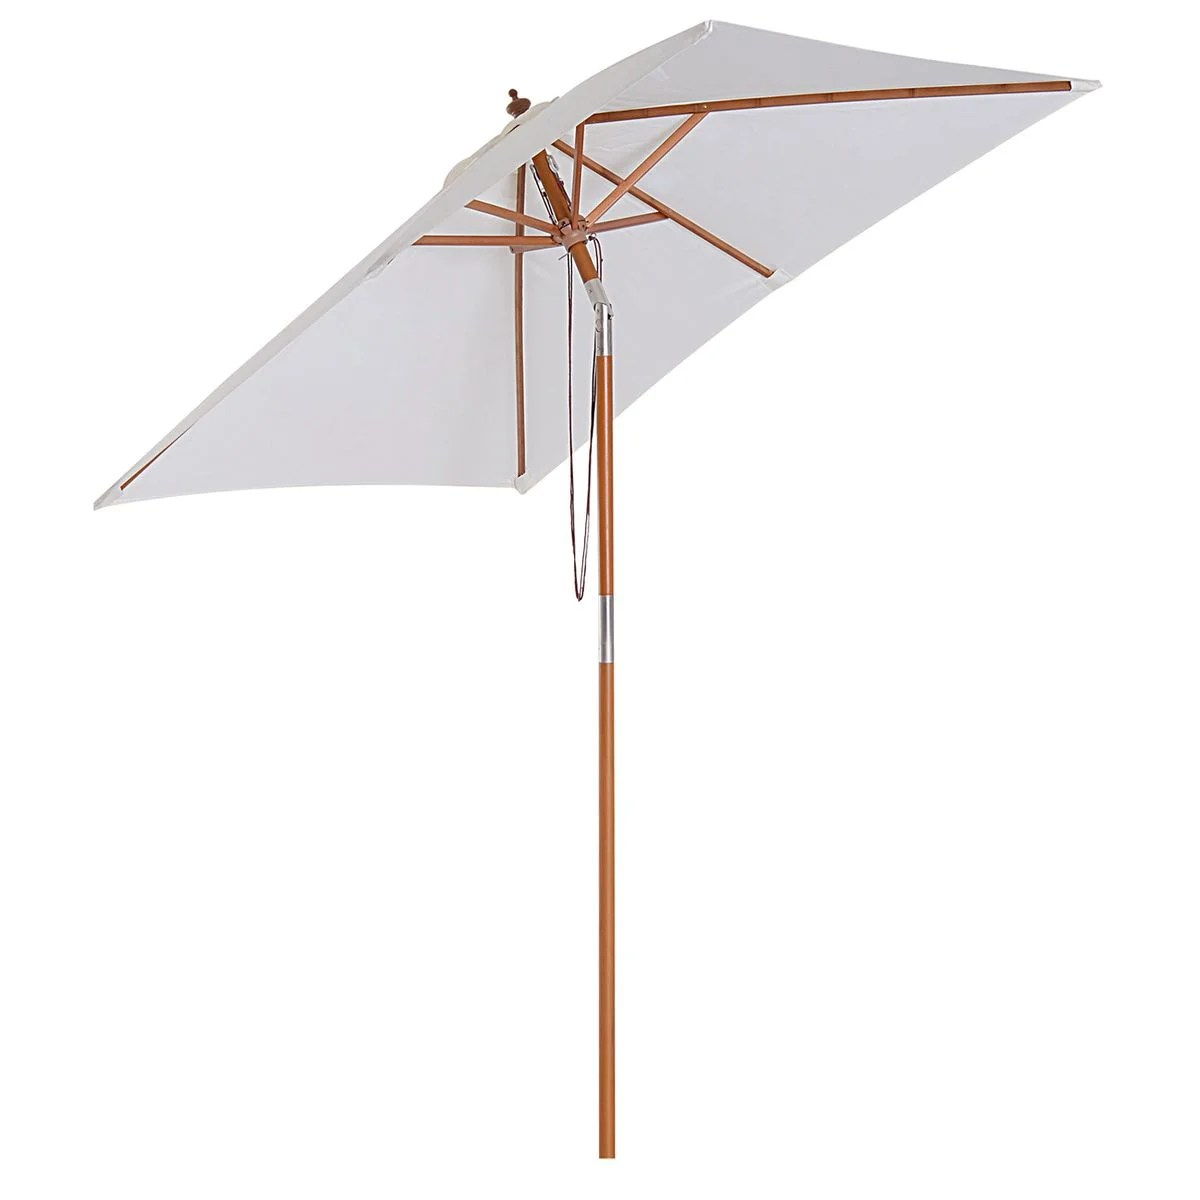 parasol rectangulaire inclinable dim 2l x 1 5l x 2 3h m